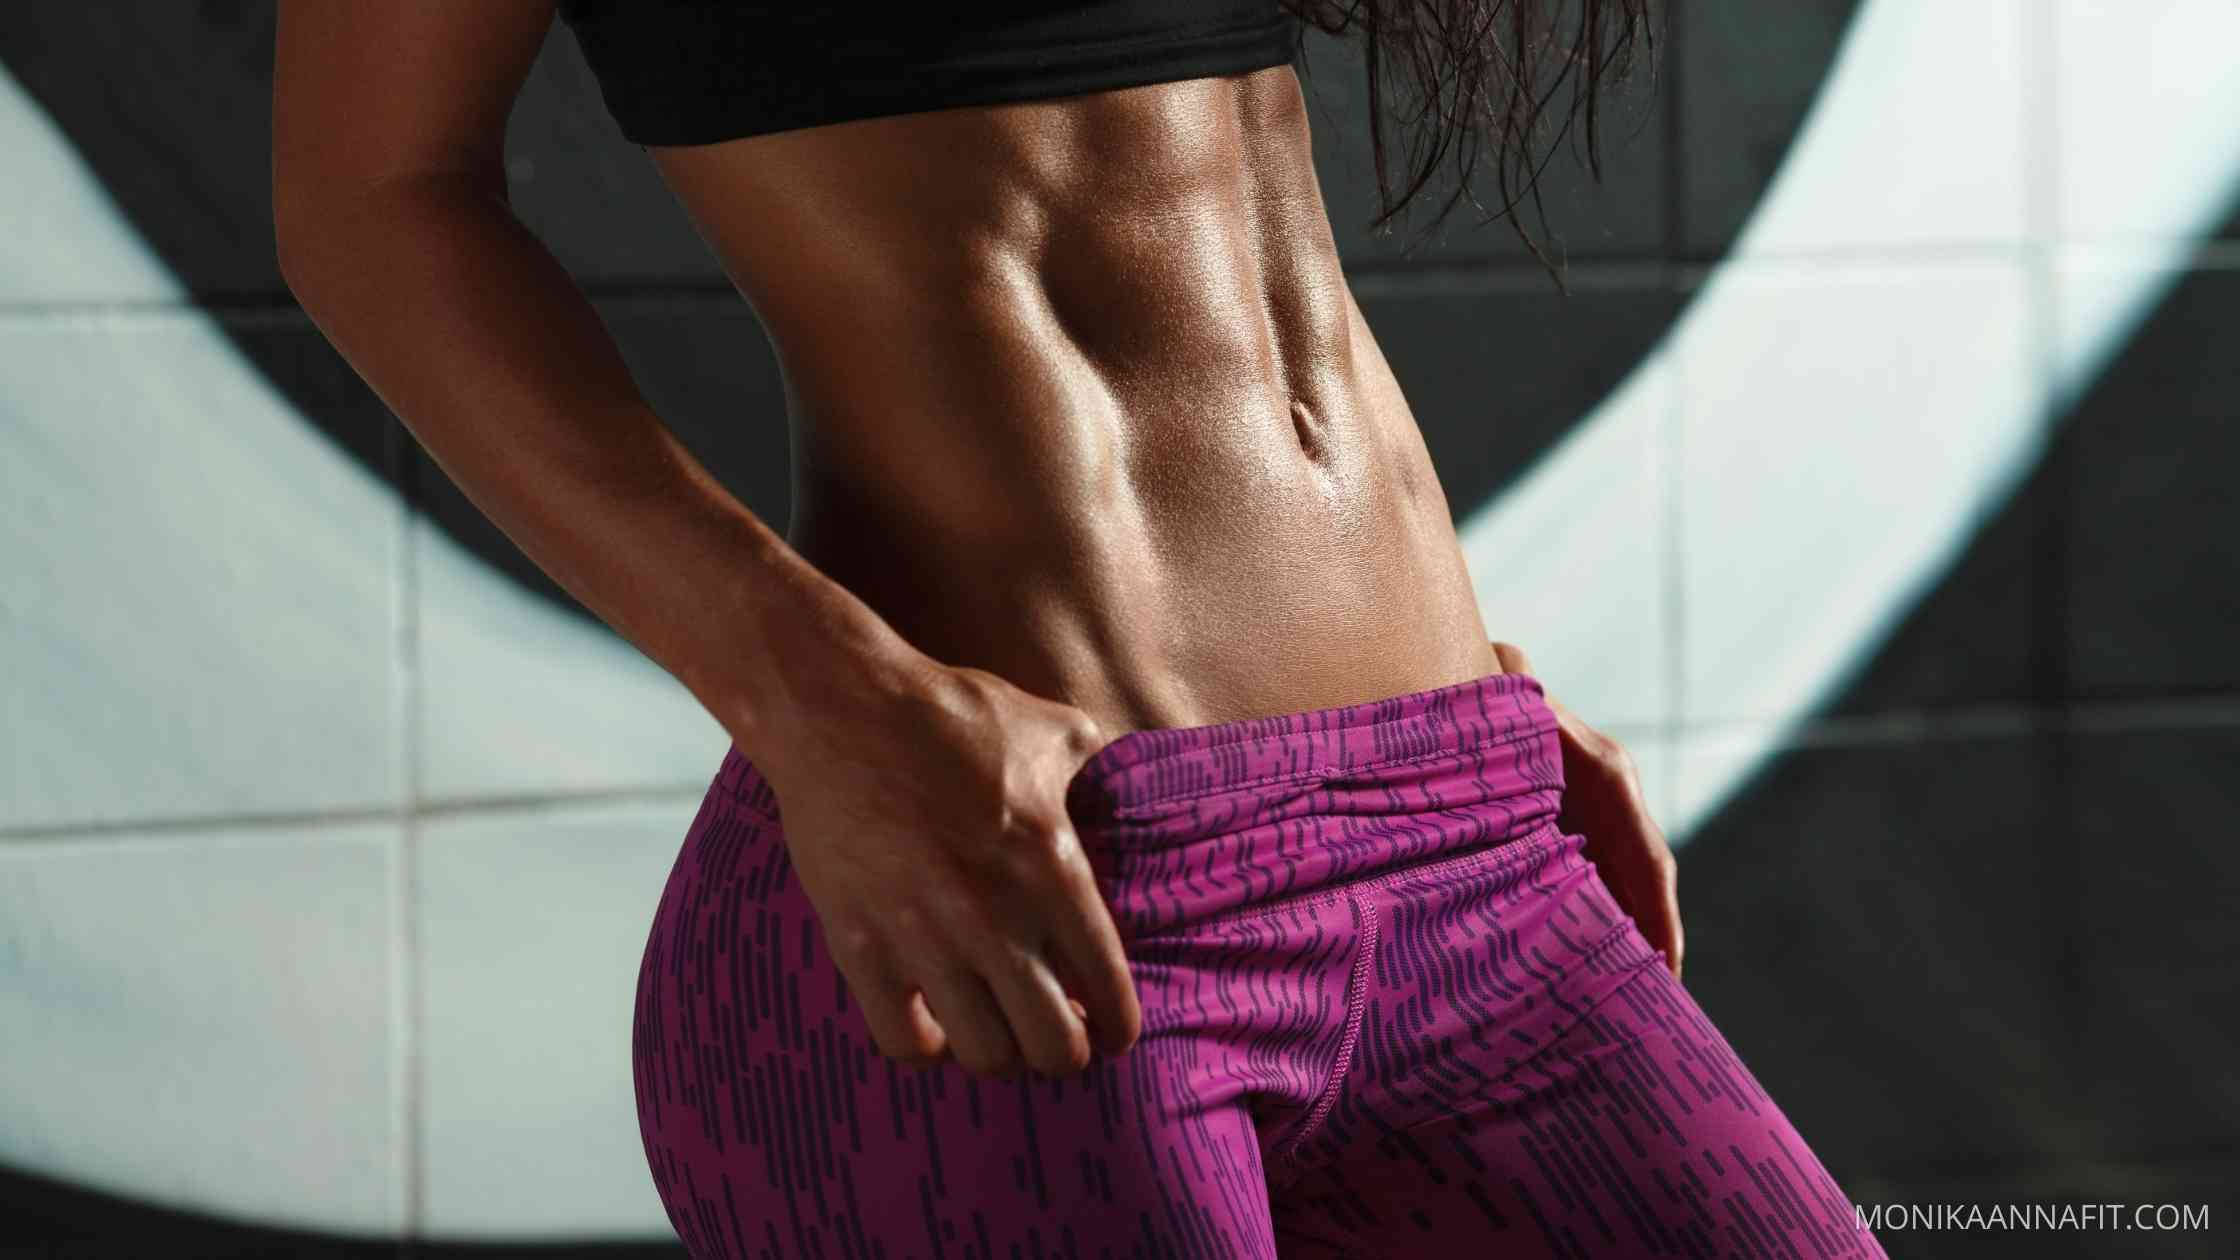 10 workout videos for slim abs at home - monikaannafit